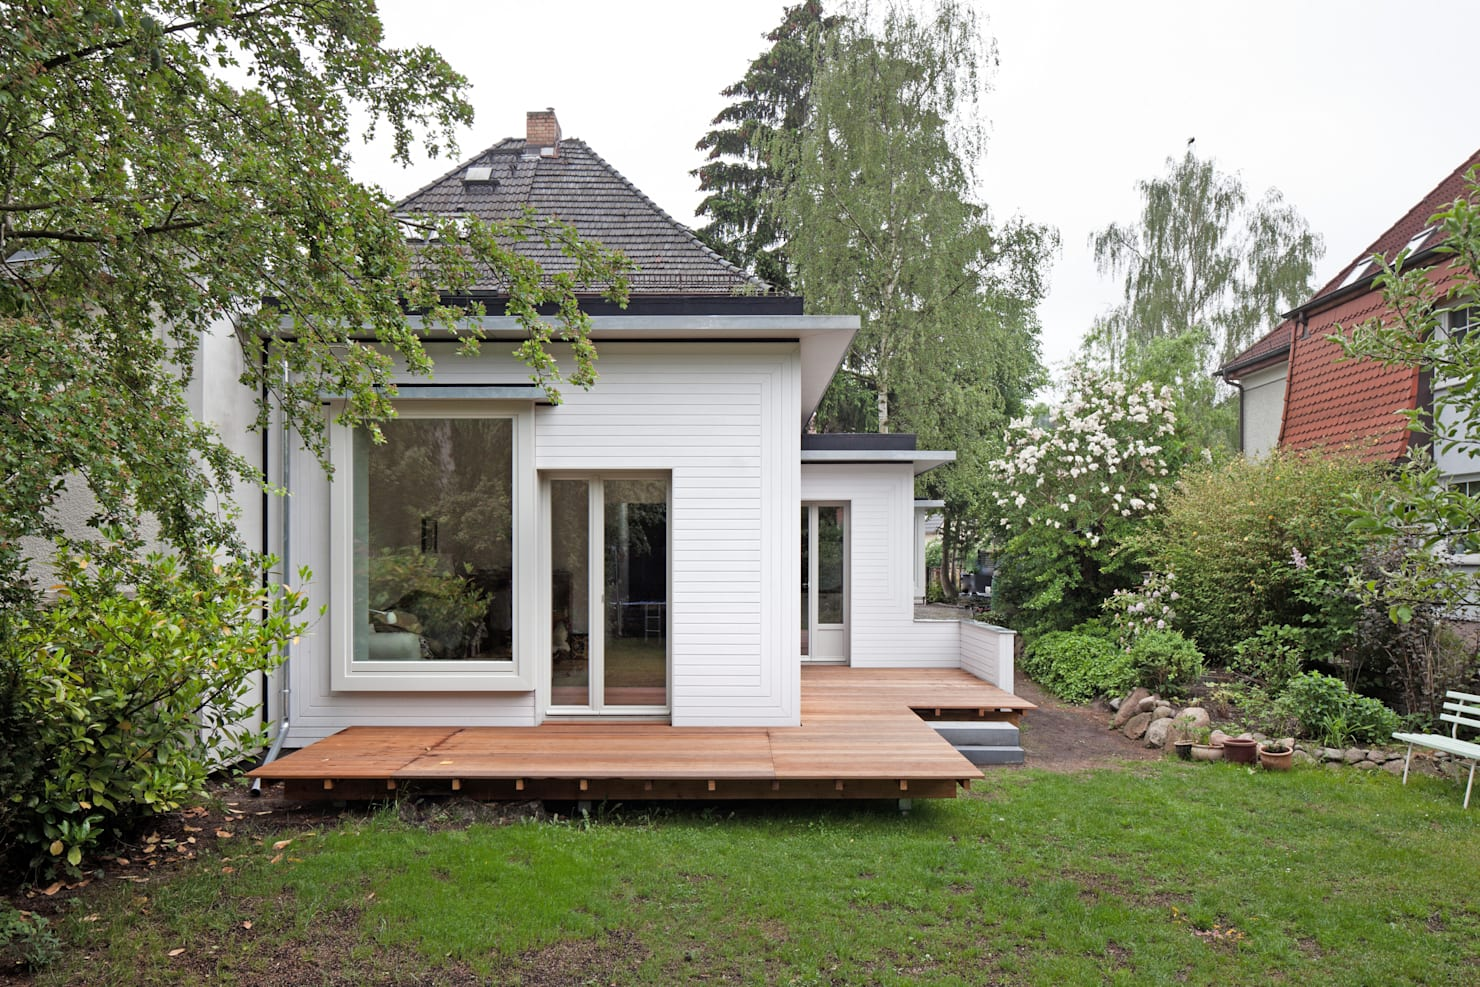 Serene, simple and an absolutely stunning home!